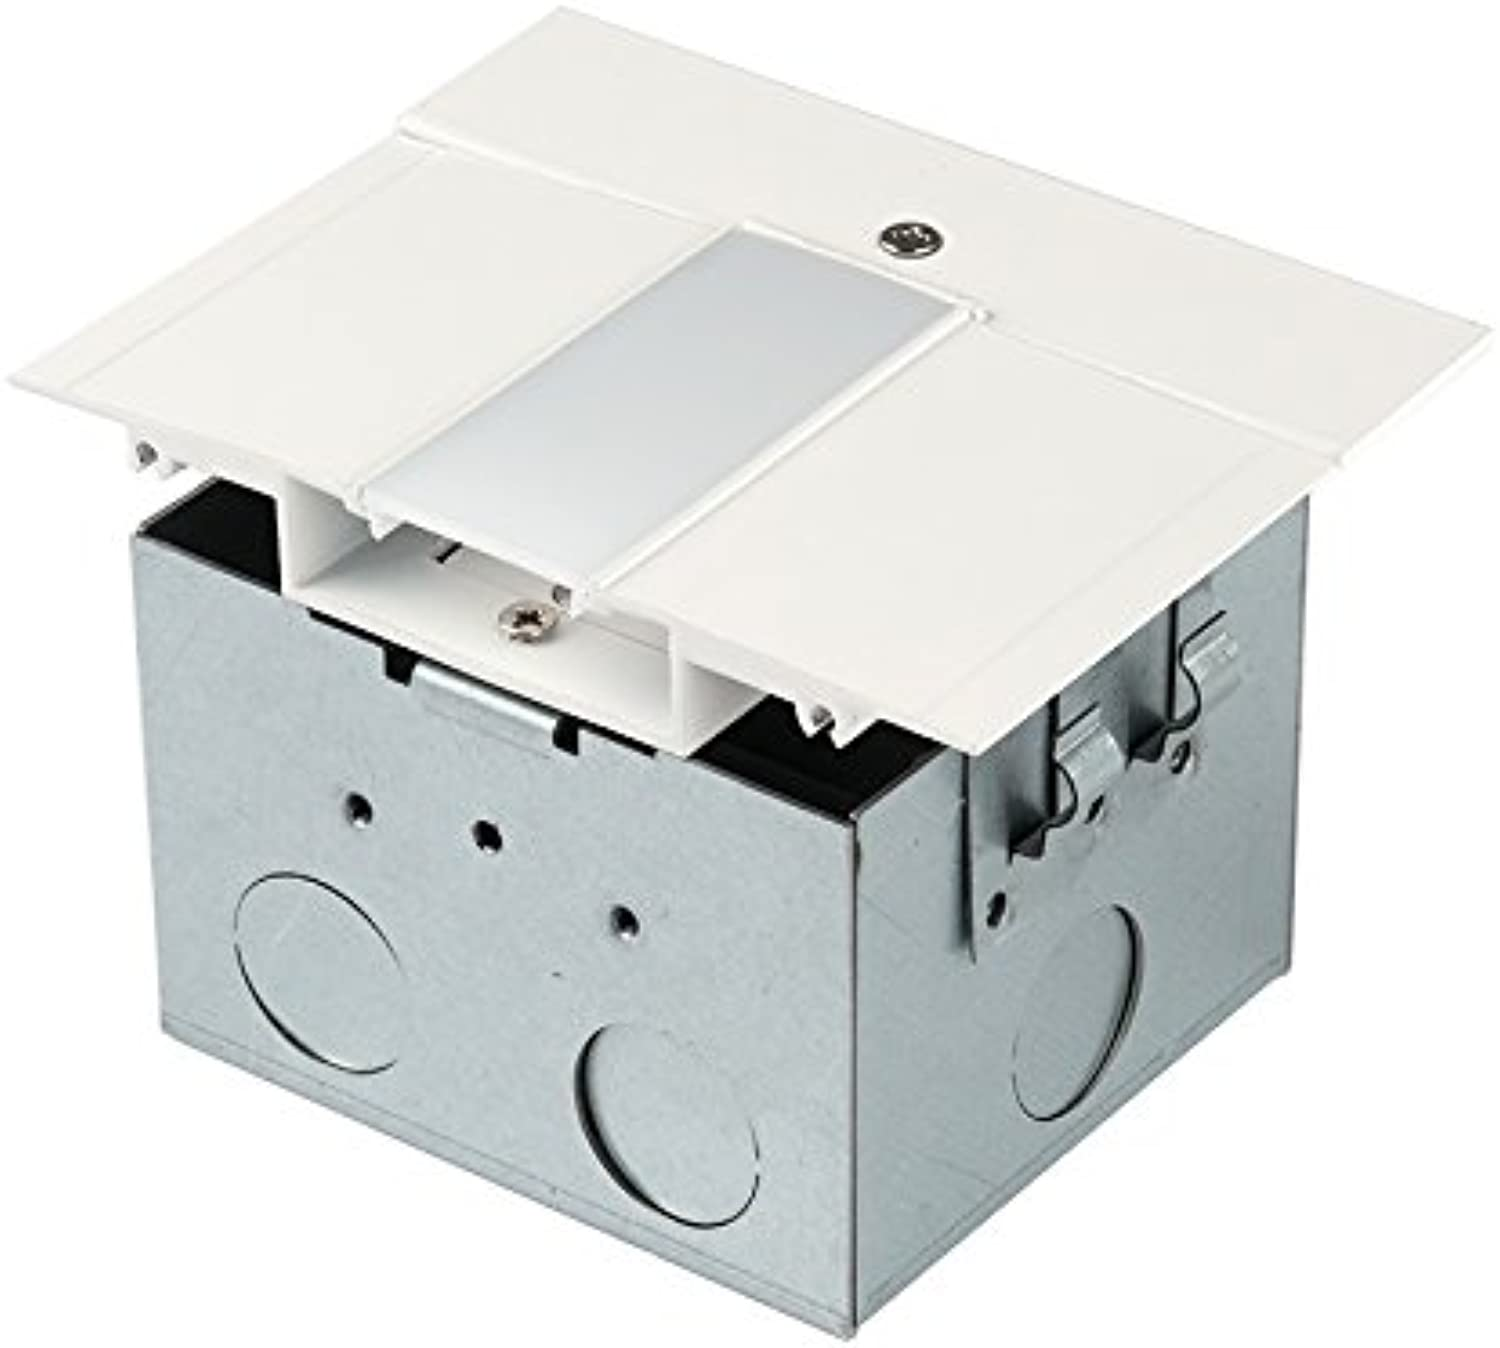 WAC Lighting LED-T-RBOX1-WT InvisiLED Power Feed for Symmetrical Recessed Channel with Junction Box, White